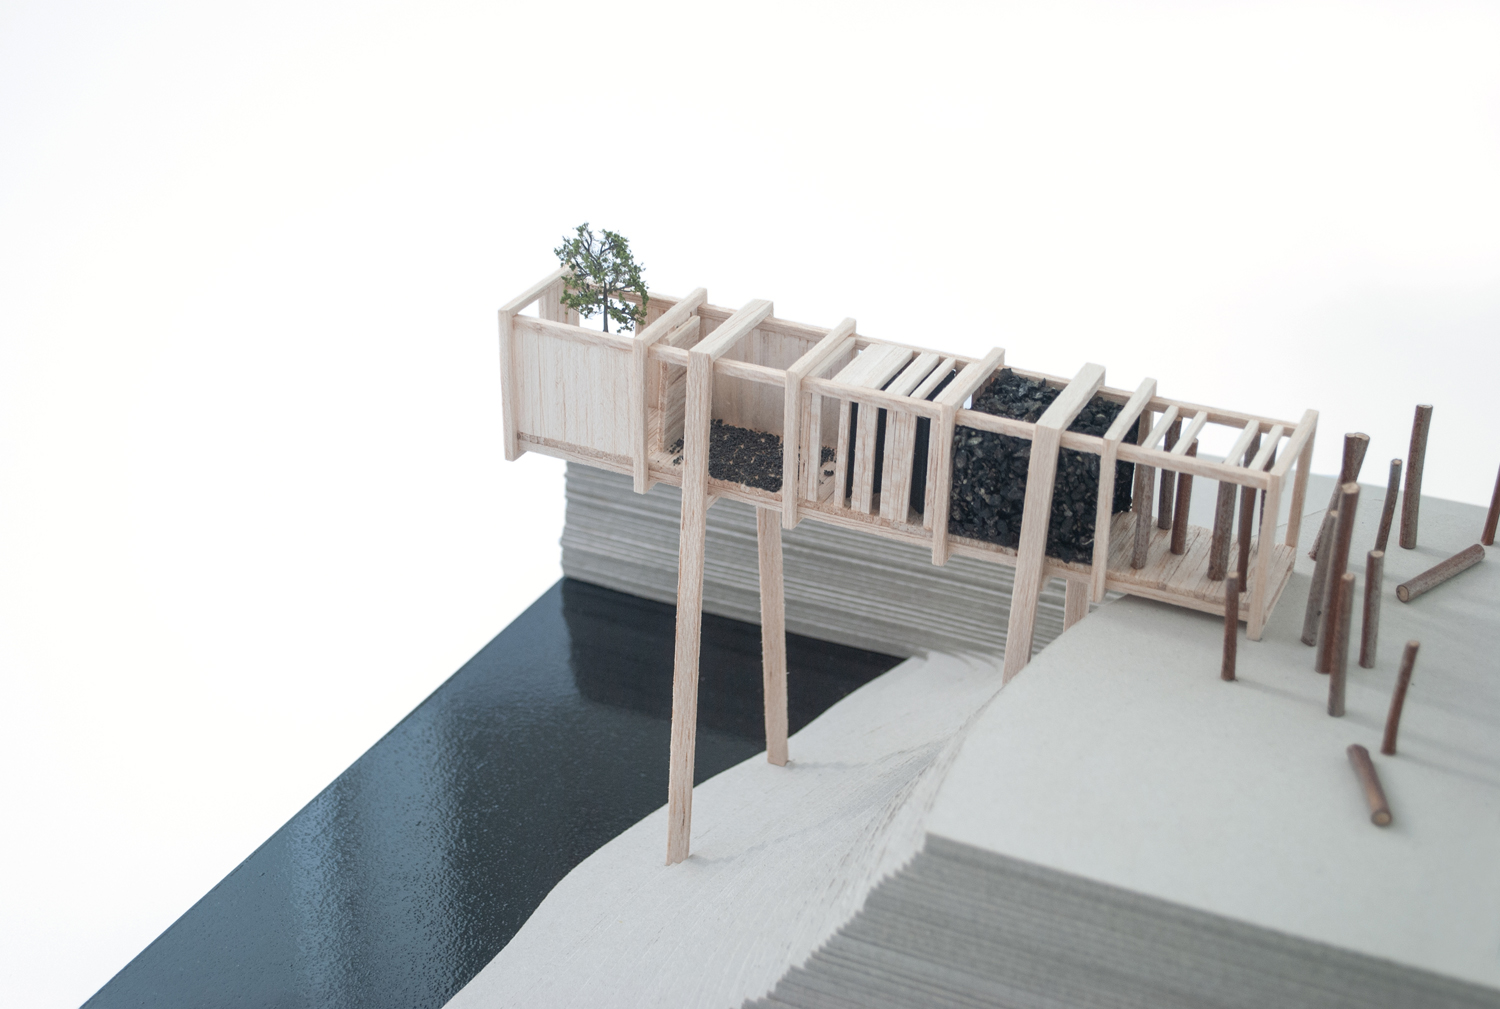 microcosme_con_form_architects_model 03.jpg